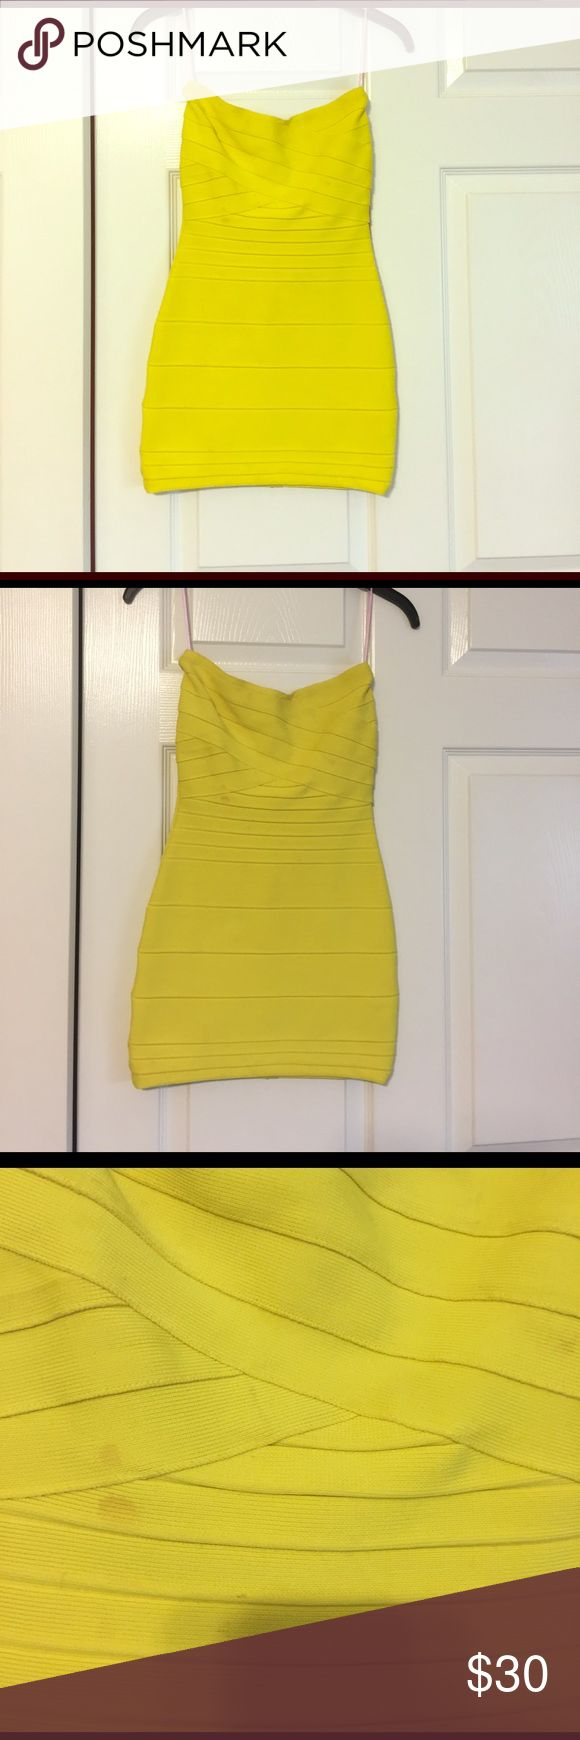 Celebrity boutique bondage dress! Bright yellow bondage dress. Size XS. Worn only once, however, needs to be dry cleaned. I also had it hemmed from its original length. I am 5'2. Great vegas dress! celebrity boutique Dresses Mini